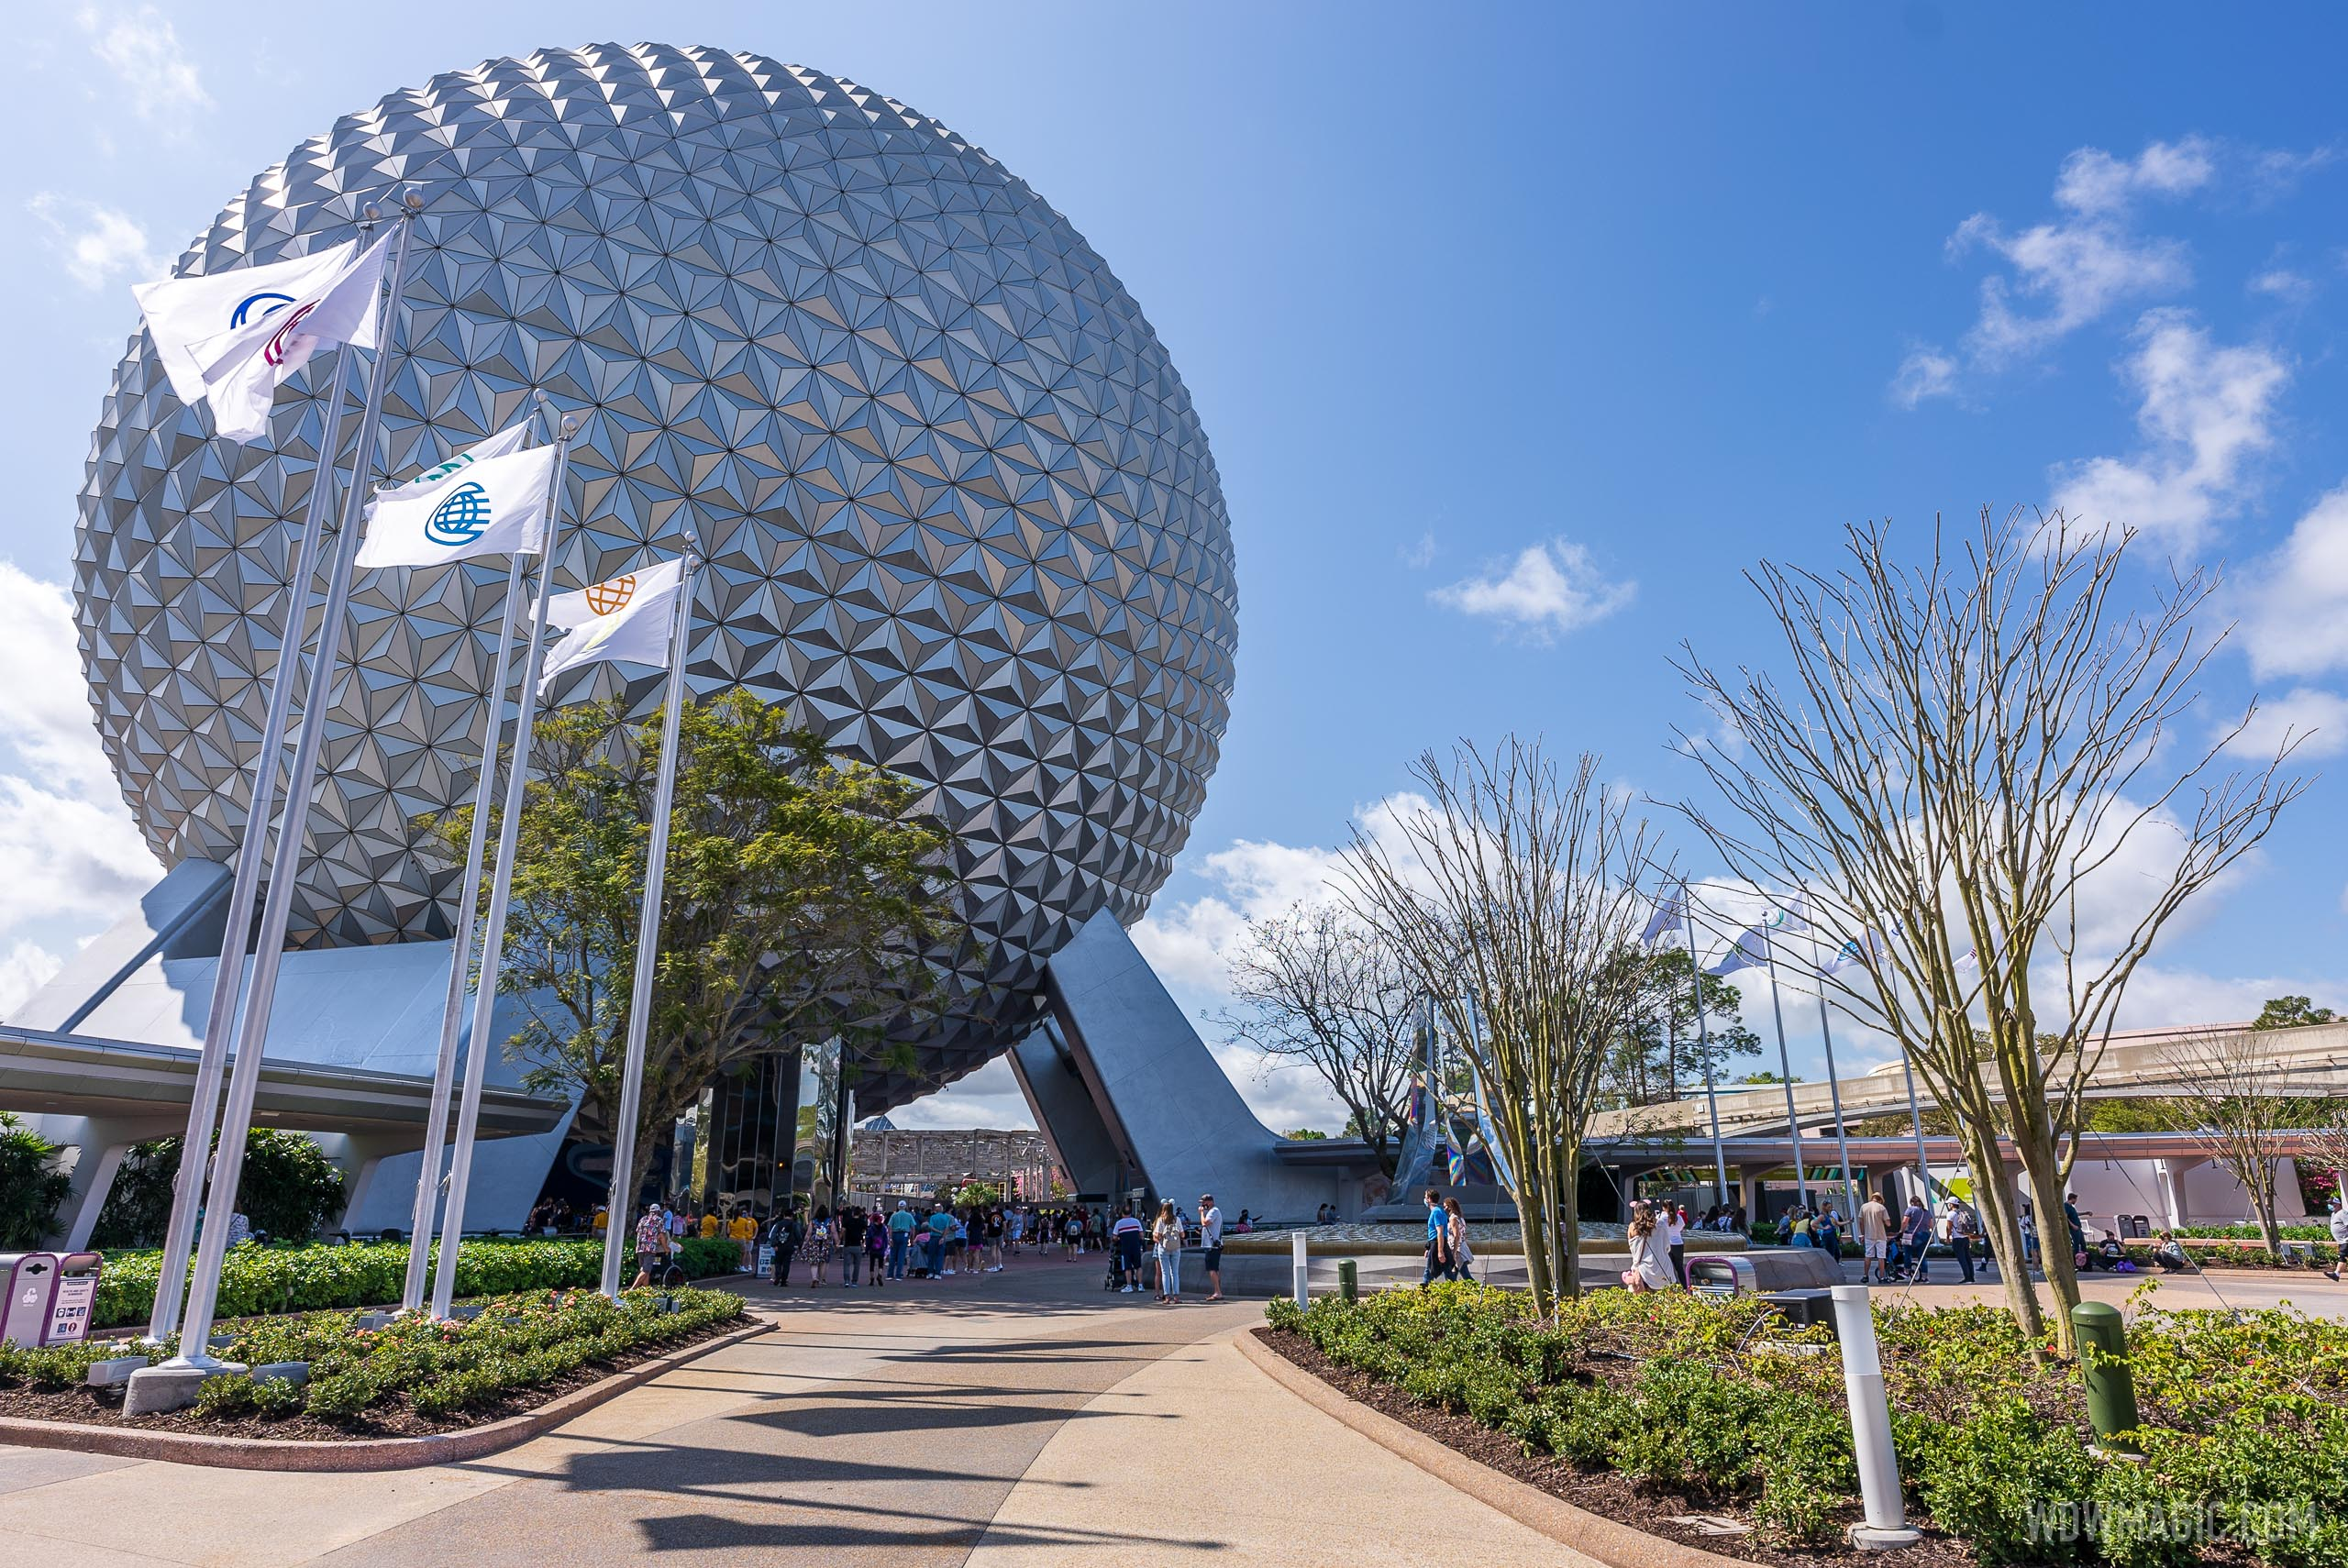 EPCOT hours have been extended to 10pm close through July 10